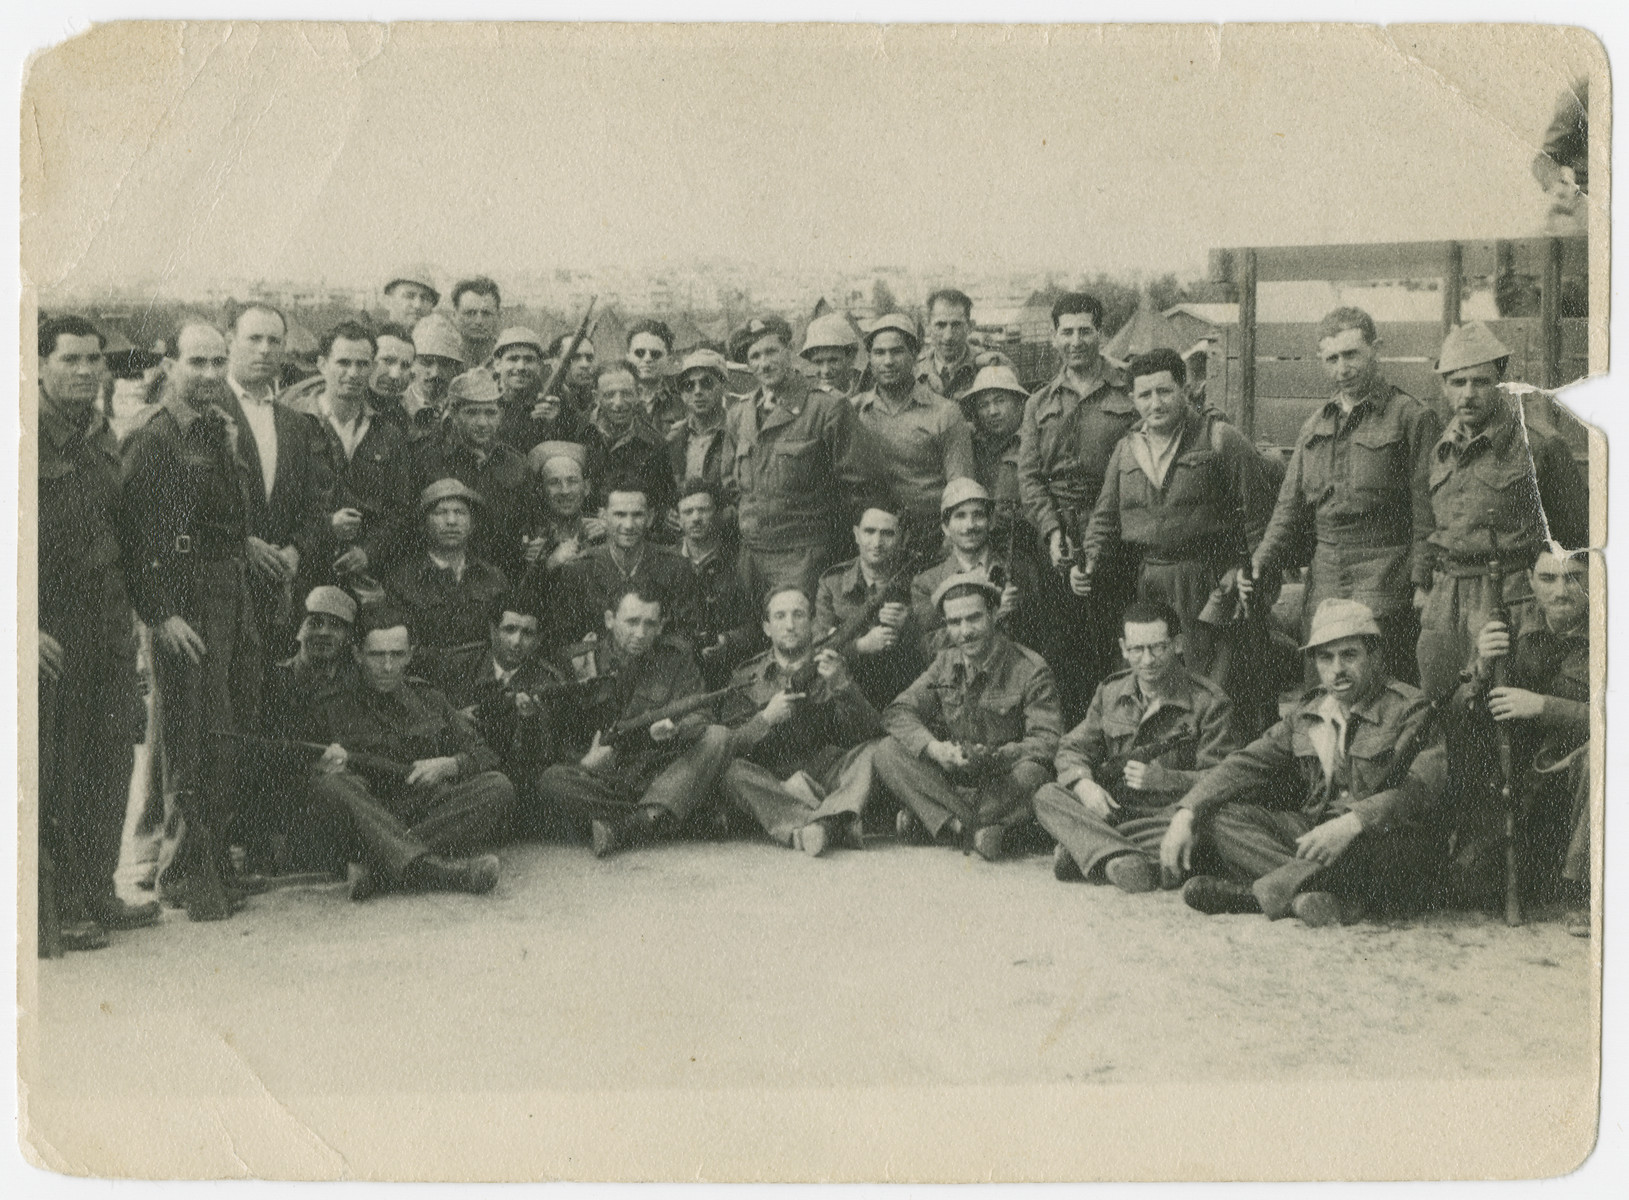 Group portrait of a unit of the Israeli Defence Forces.  Lt. Yehuda Bielski is standing in the center wearing a beret.